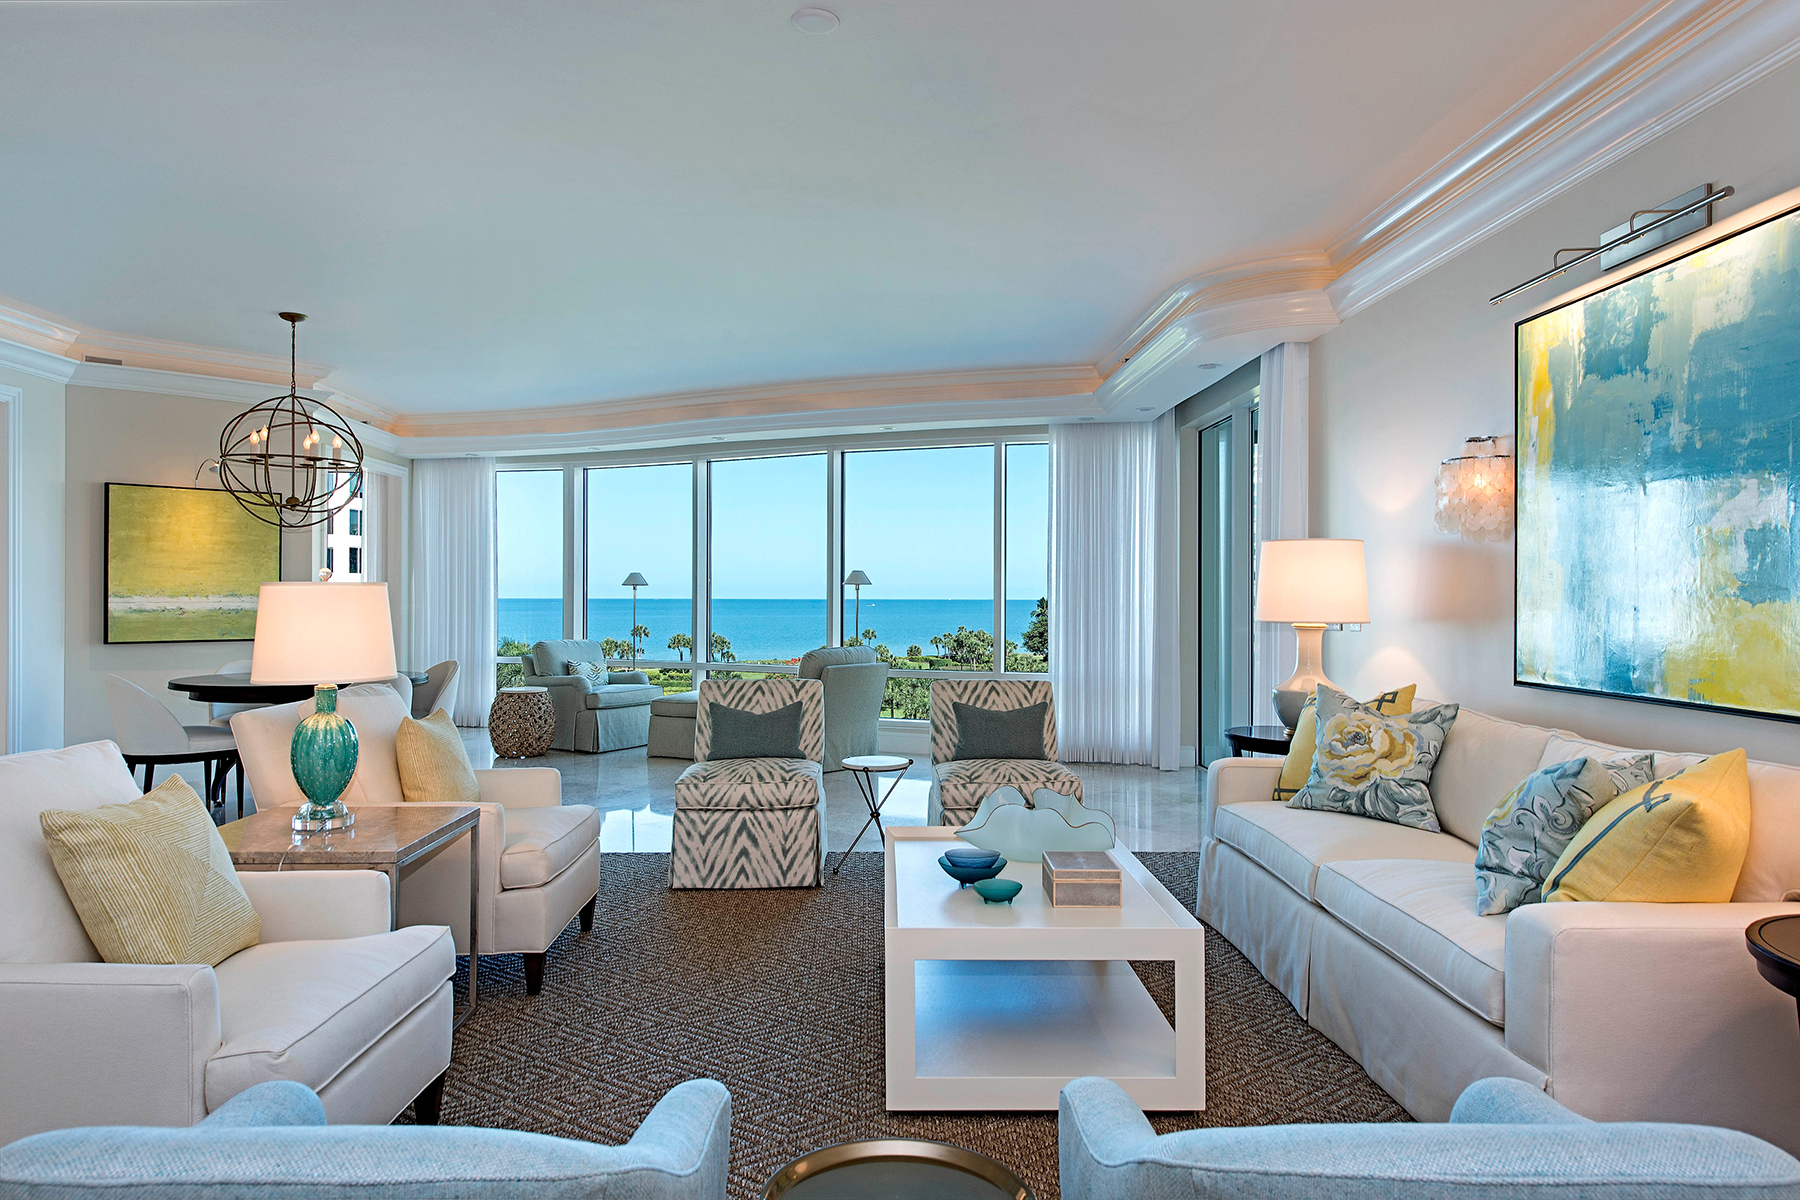 Condominium for Sale at PARK SHORE - PROVENCE 4151 Gulf Shore Blvd N 603 Naples, Florida 34103 United States